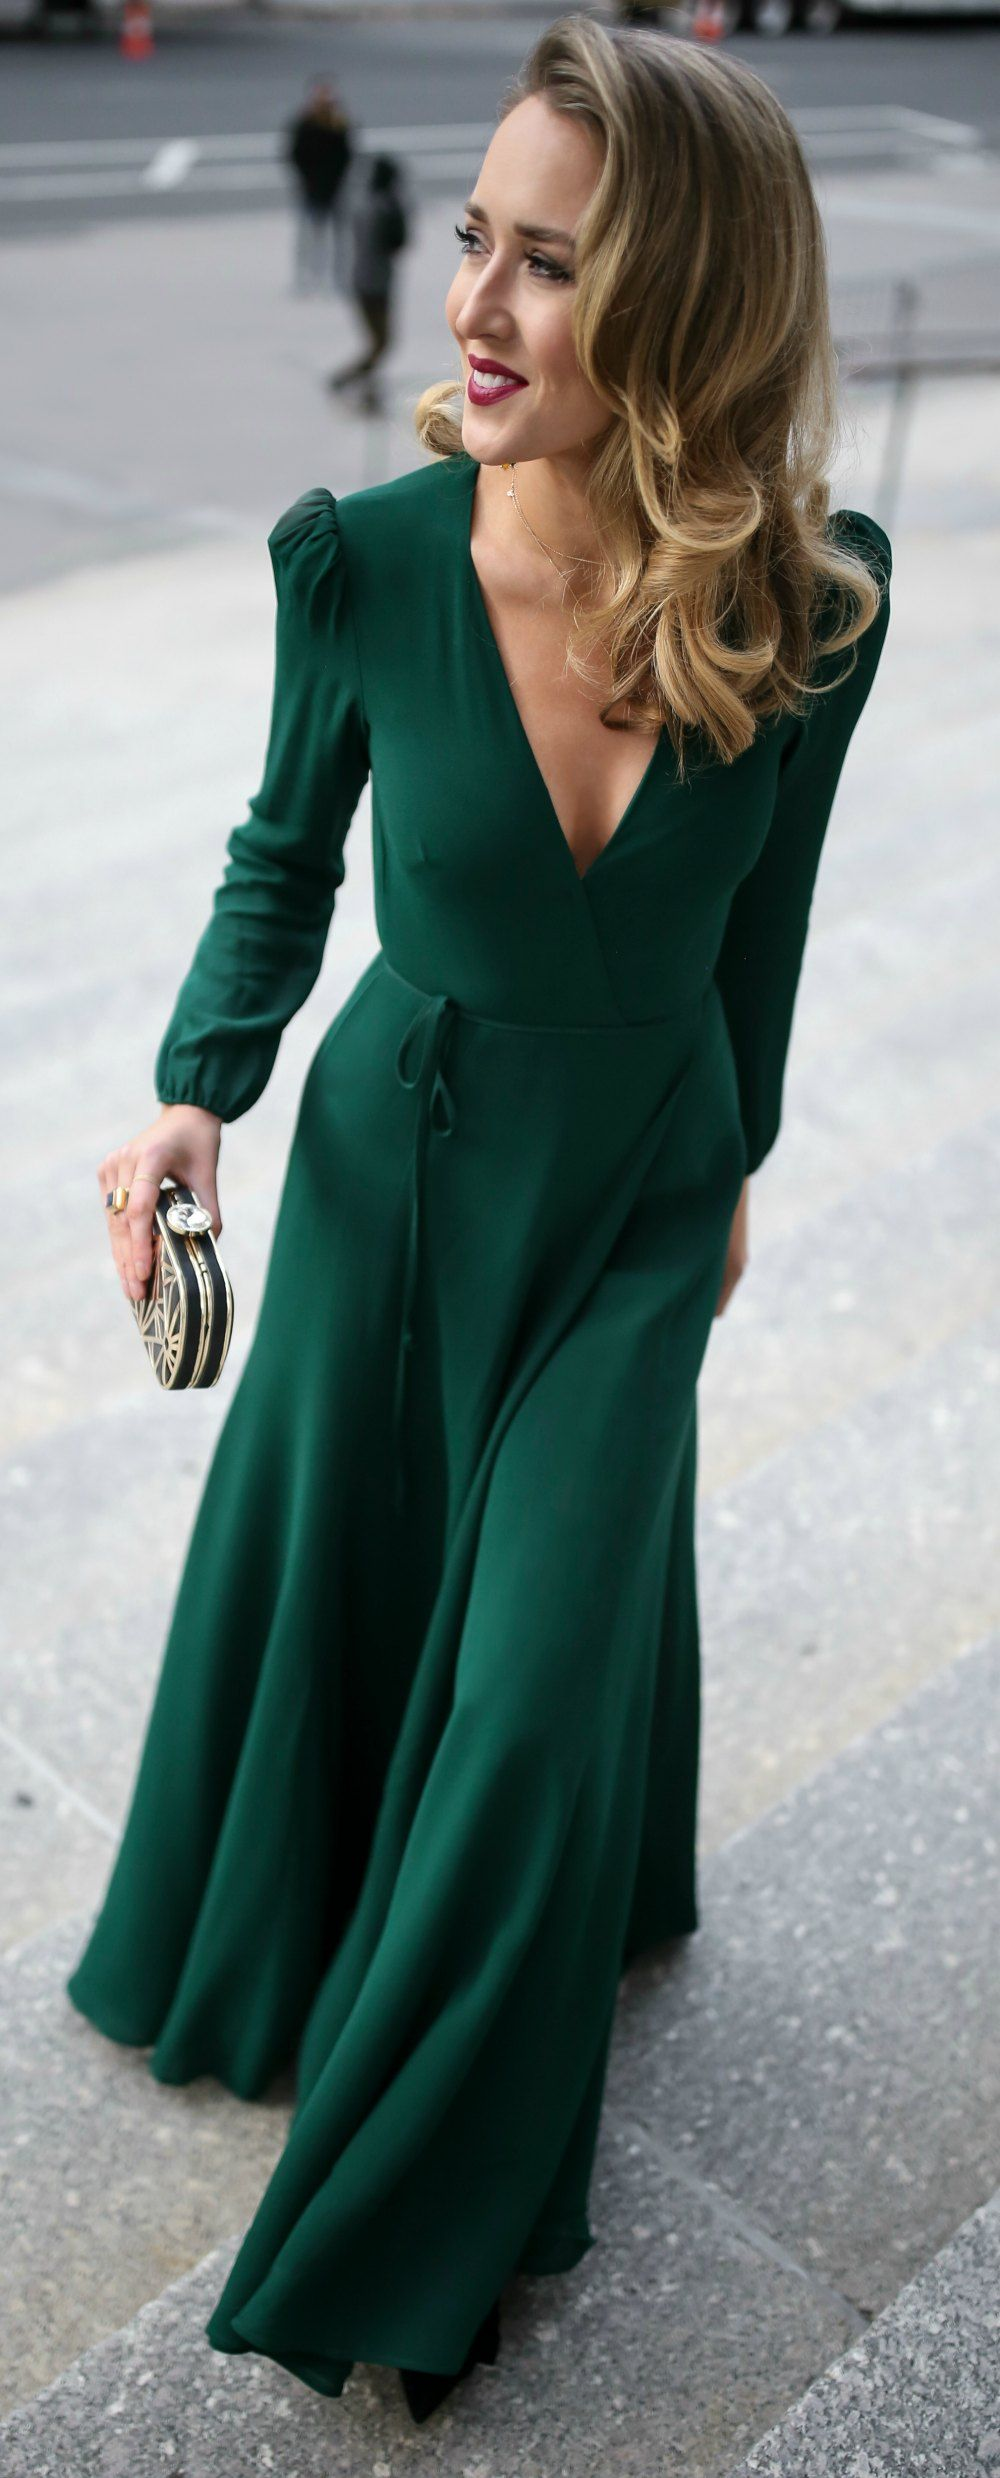 Emerald green long-sleeve floor-length wrap dress 617e91c4e3ff5